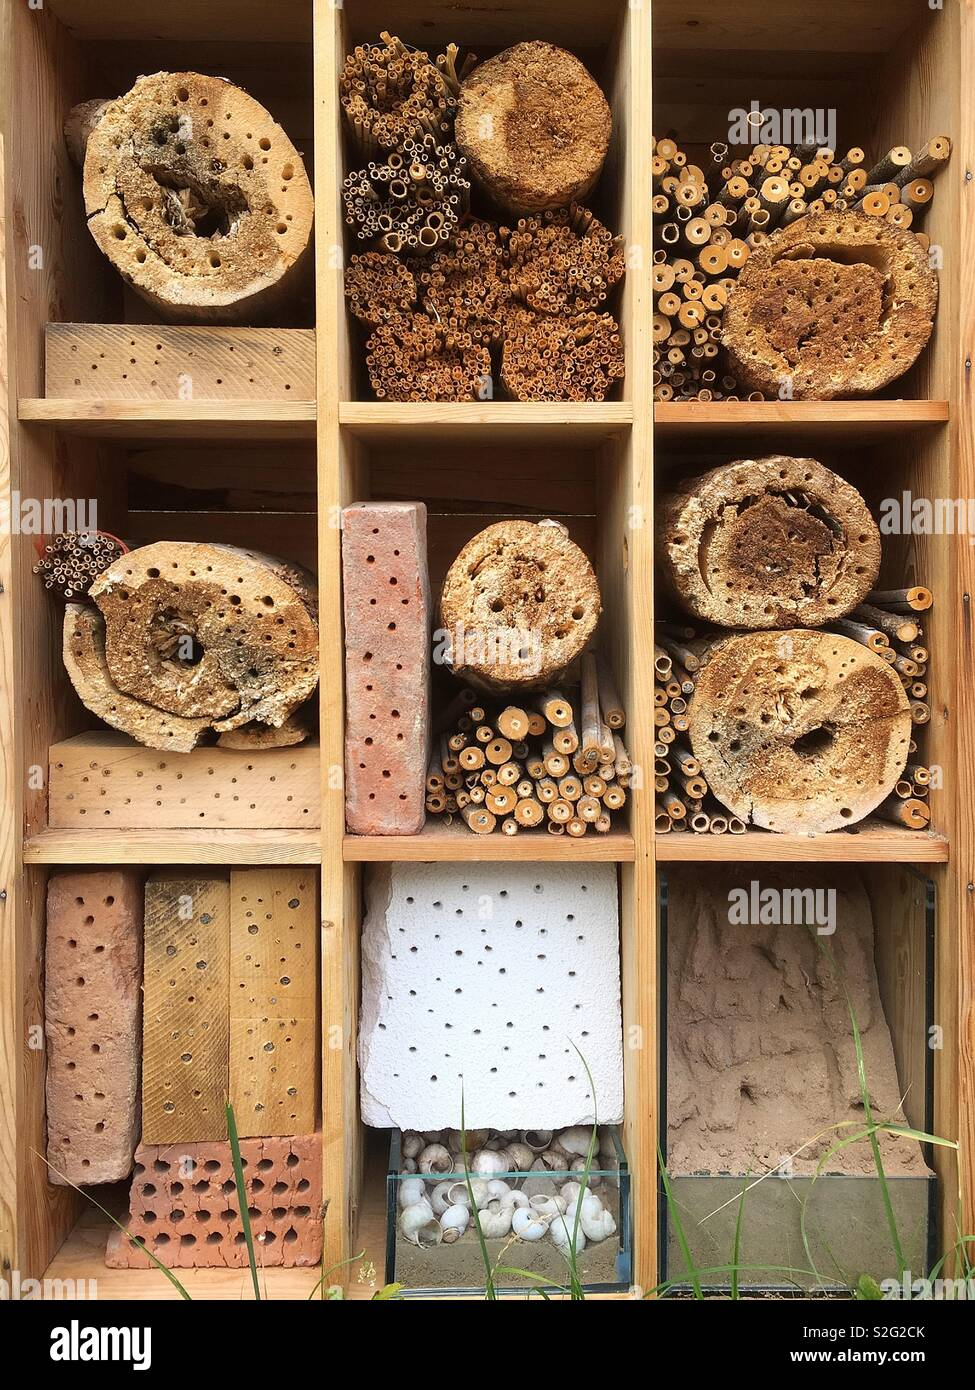 Environmentally friendly bee-house: a home made from natural and biodegradable materials designed to help arrest the decline in bee populations. - Stock Image